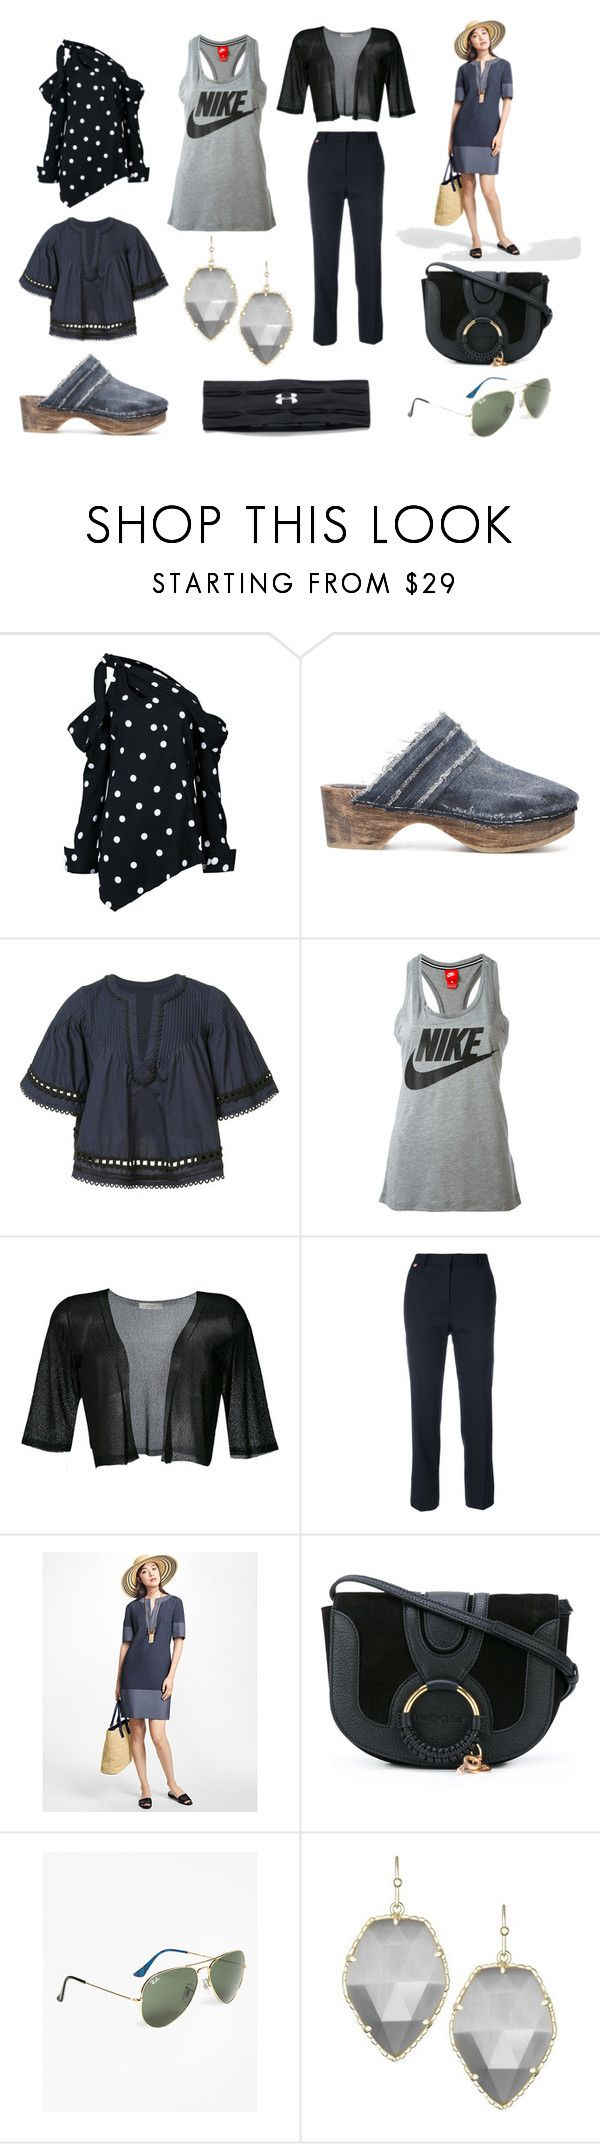 """Day Of New Fashion"" by donna-wang1 ❤ liked on Polyvore featuring Monse, MM6 Maison Margiela, 10 Crosby Derek Lam, NIKE, D.Exterior, Paul Smith, Brooks Brothers, See by Chloé, Kendra Scott and Under Armour"